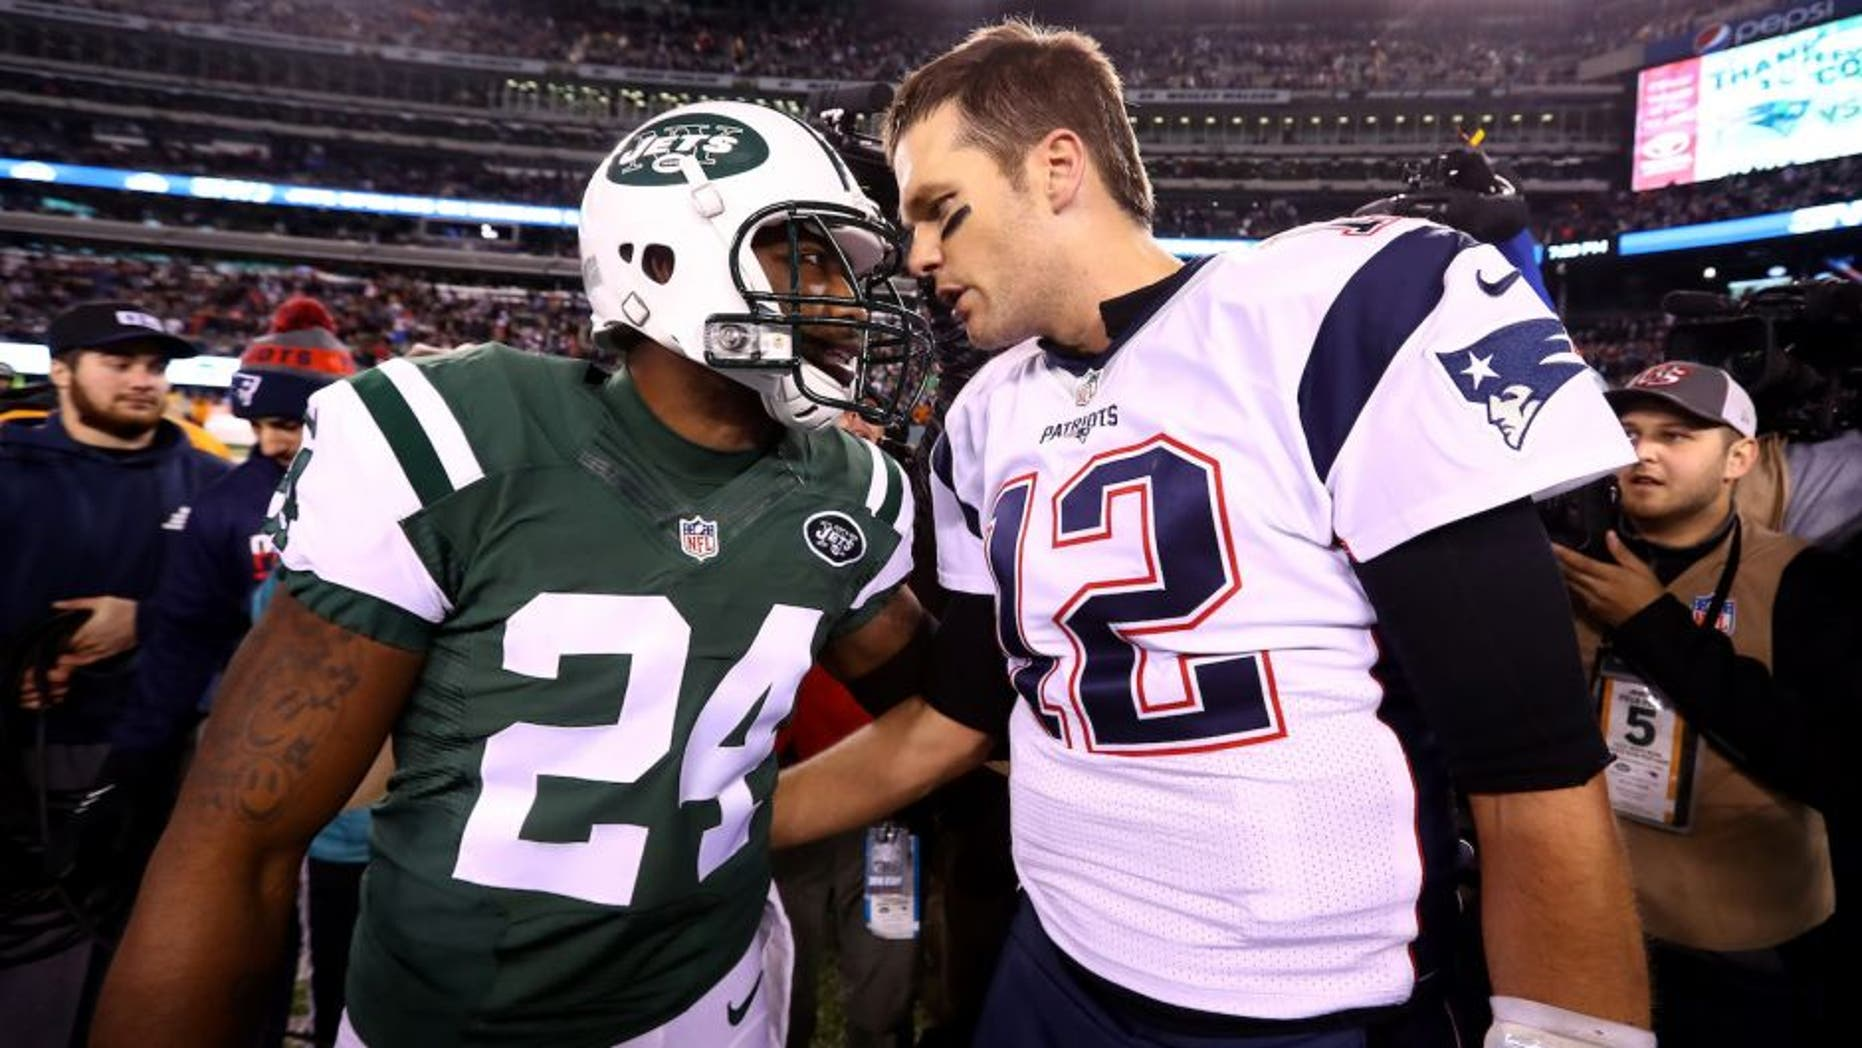 EAST RUTHERFORD, NJ - NOVEMBER 27: (L-R) Darrelle Revis #24 of the New York Jets talks with Tom Brady #12 of the New England Patriots after their game at MetLife Stadium on November 27, 2016 in East Rutherford, New Jersey. The New England Patriots defeated the New York Jets with a score of 22 to 17. (Photo by Al Bello/Getty Images)